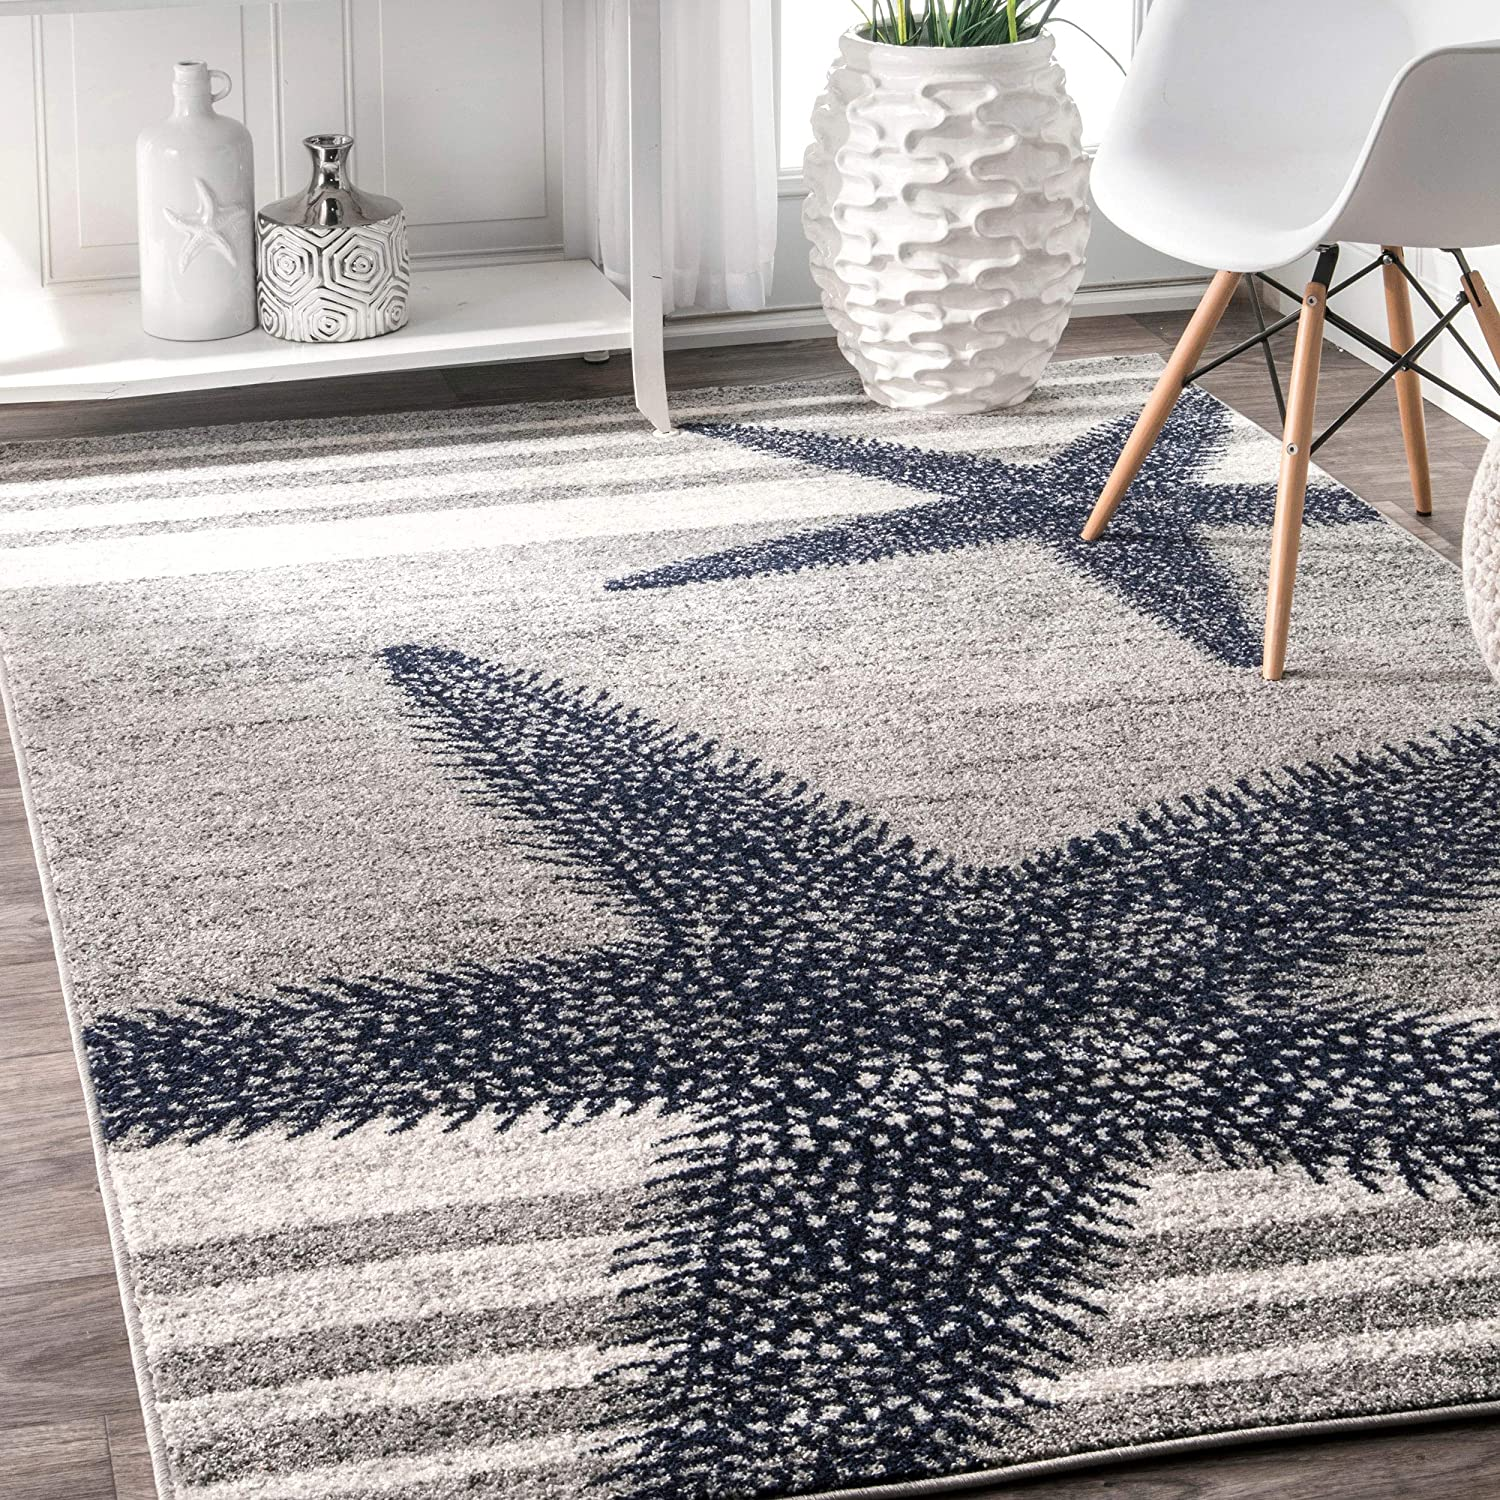 "nuLOOM Thomas Paul Starfish Area Rug, 7' 6"" x 9' 6"", Gray"